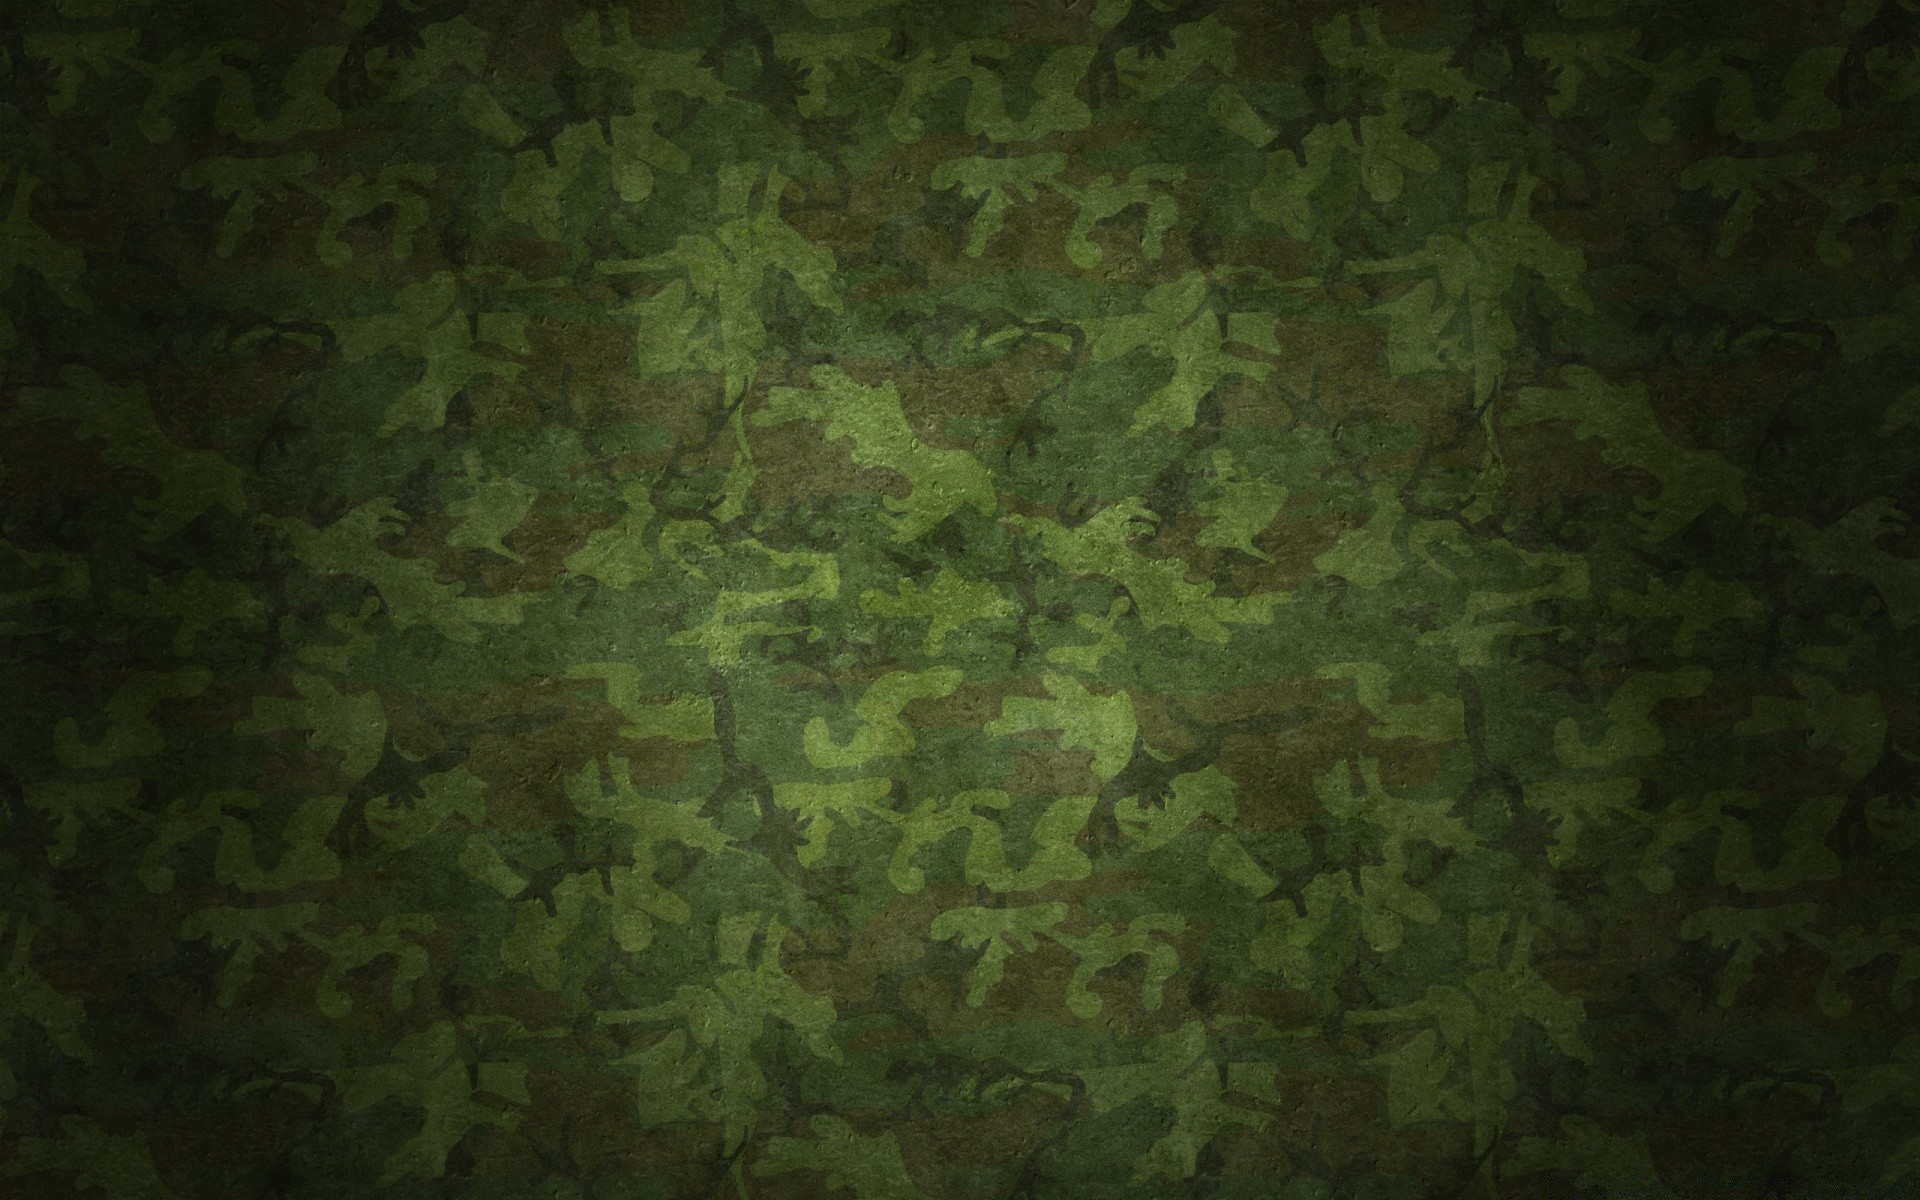 Weapons And Army Desktop Abstract Texture Pattern Background Design Wall Wallpaper Art Vintage Color Graphic Fabric